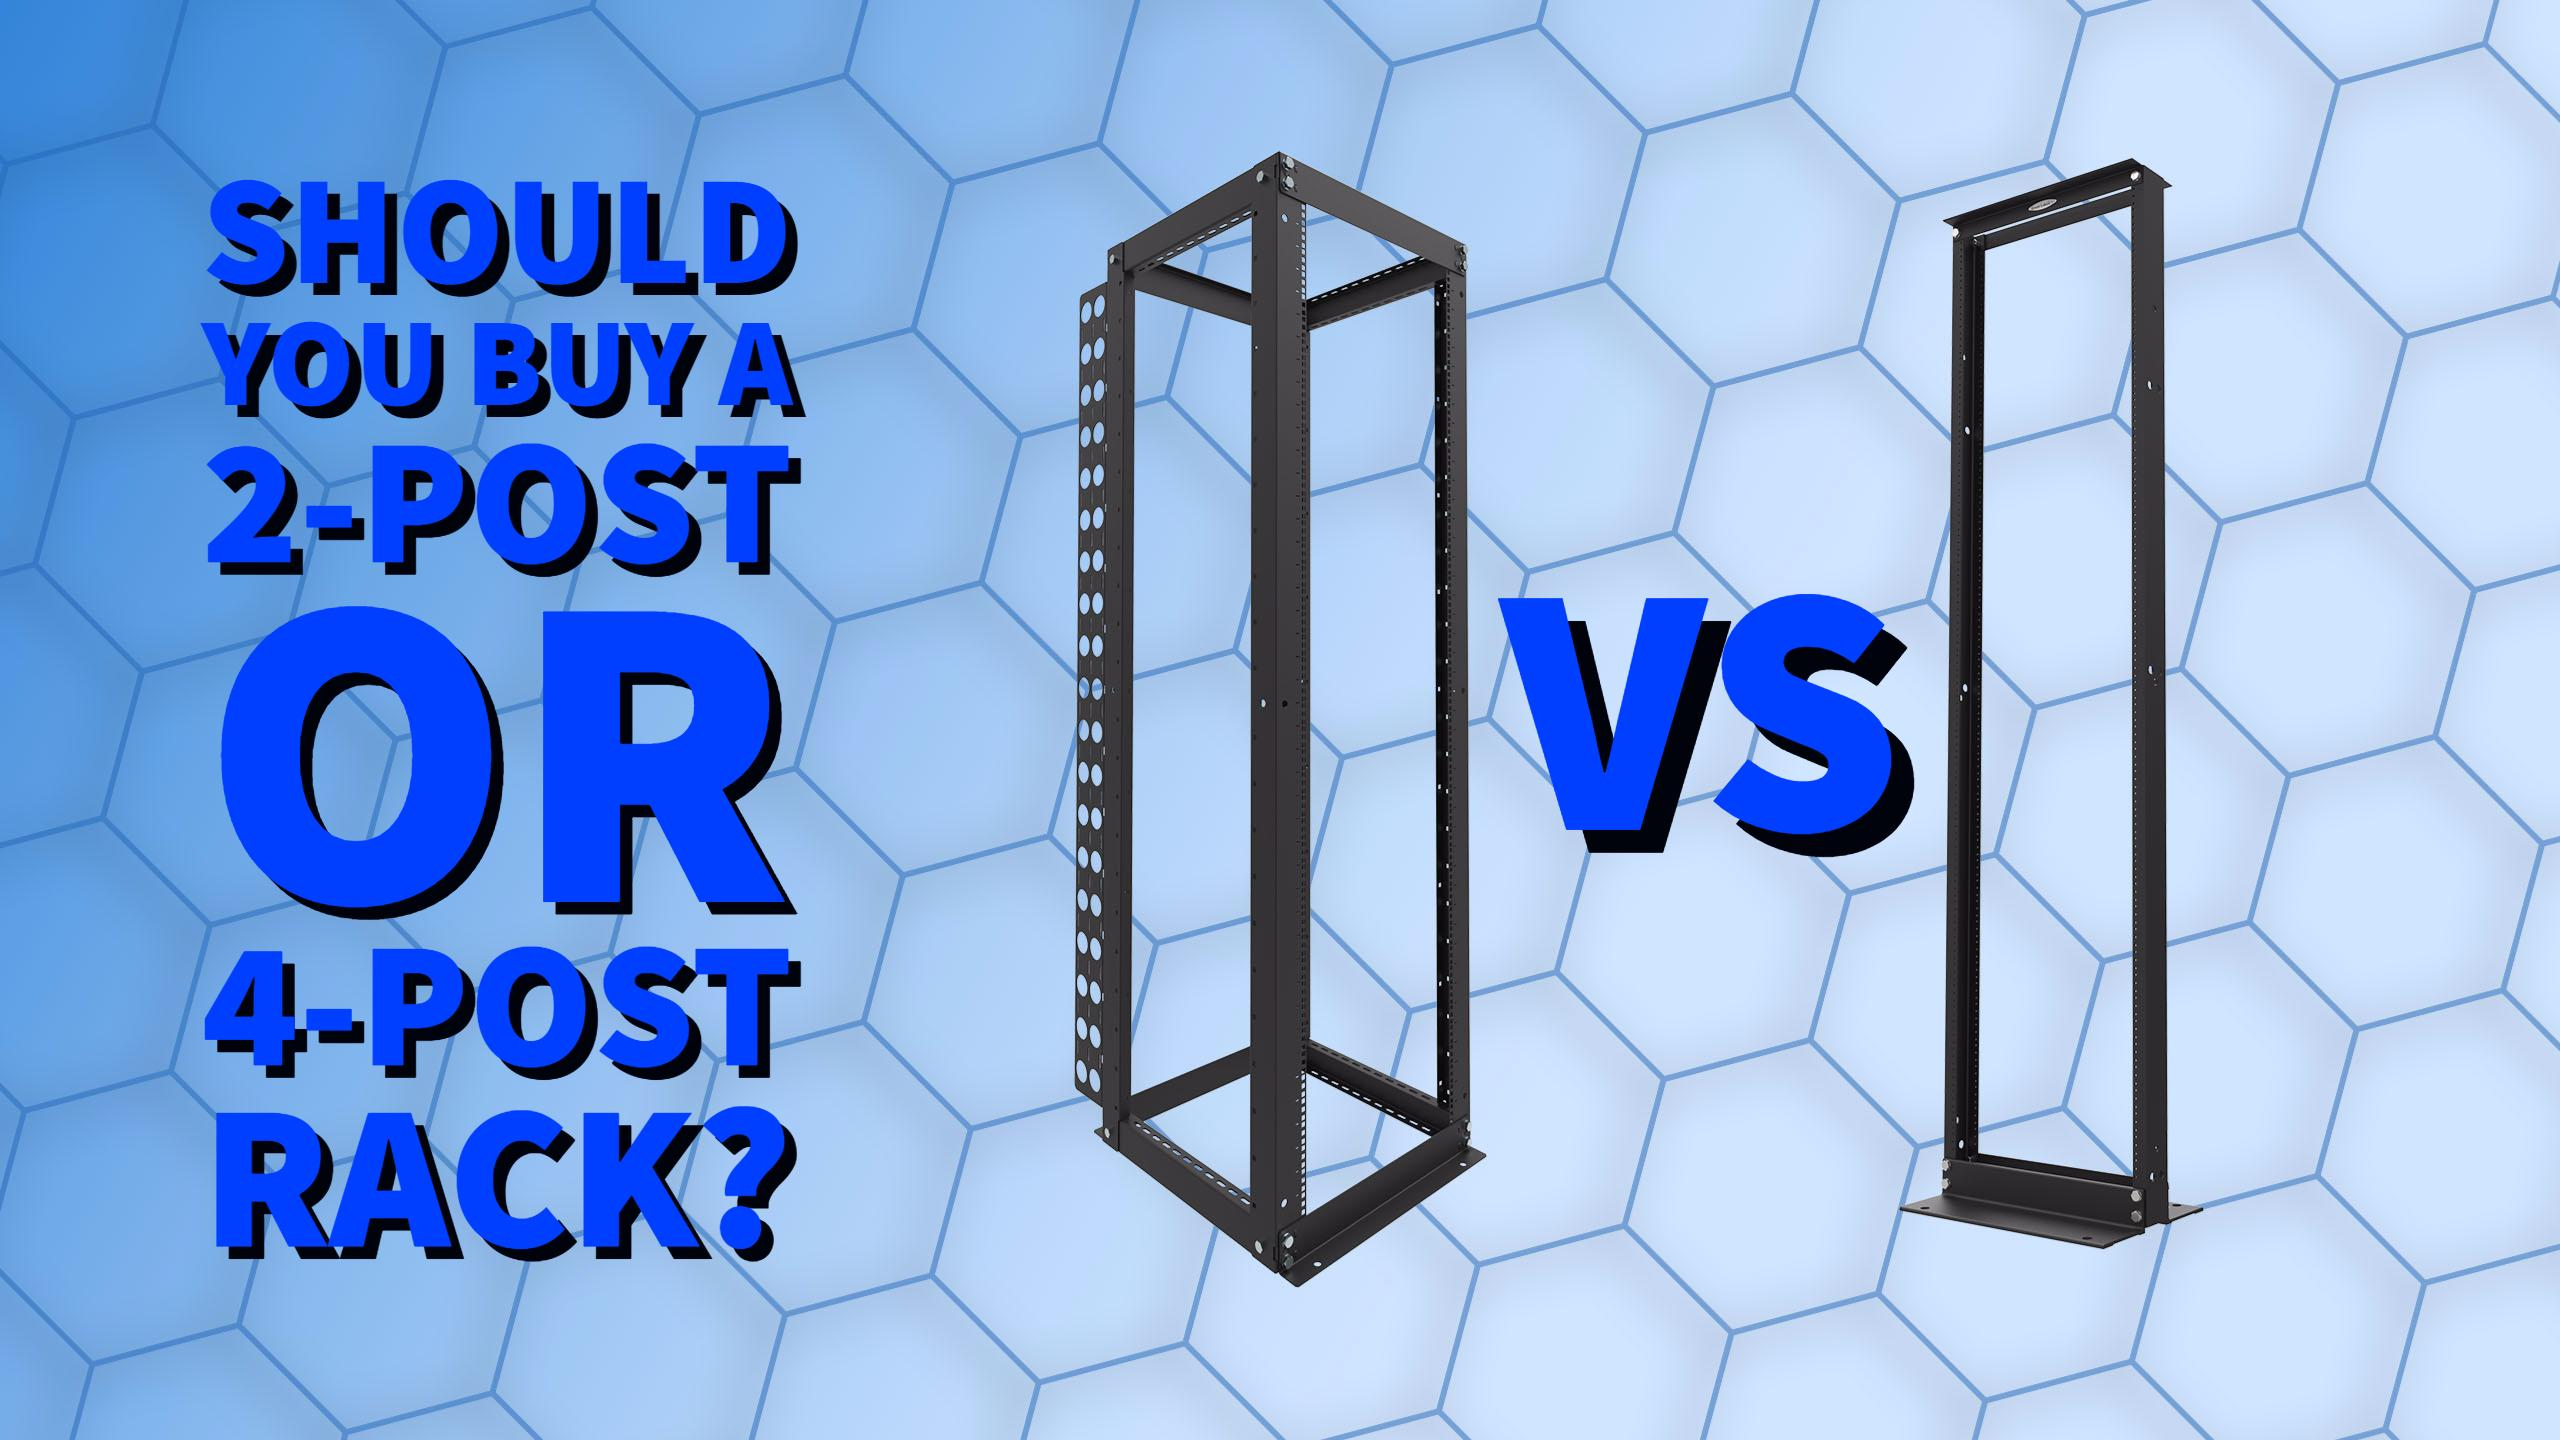 Should You Buy a 2-Post or 4-Post Rack